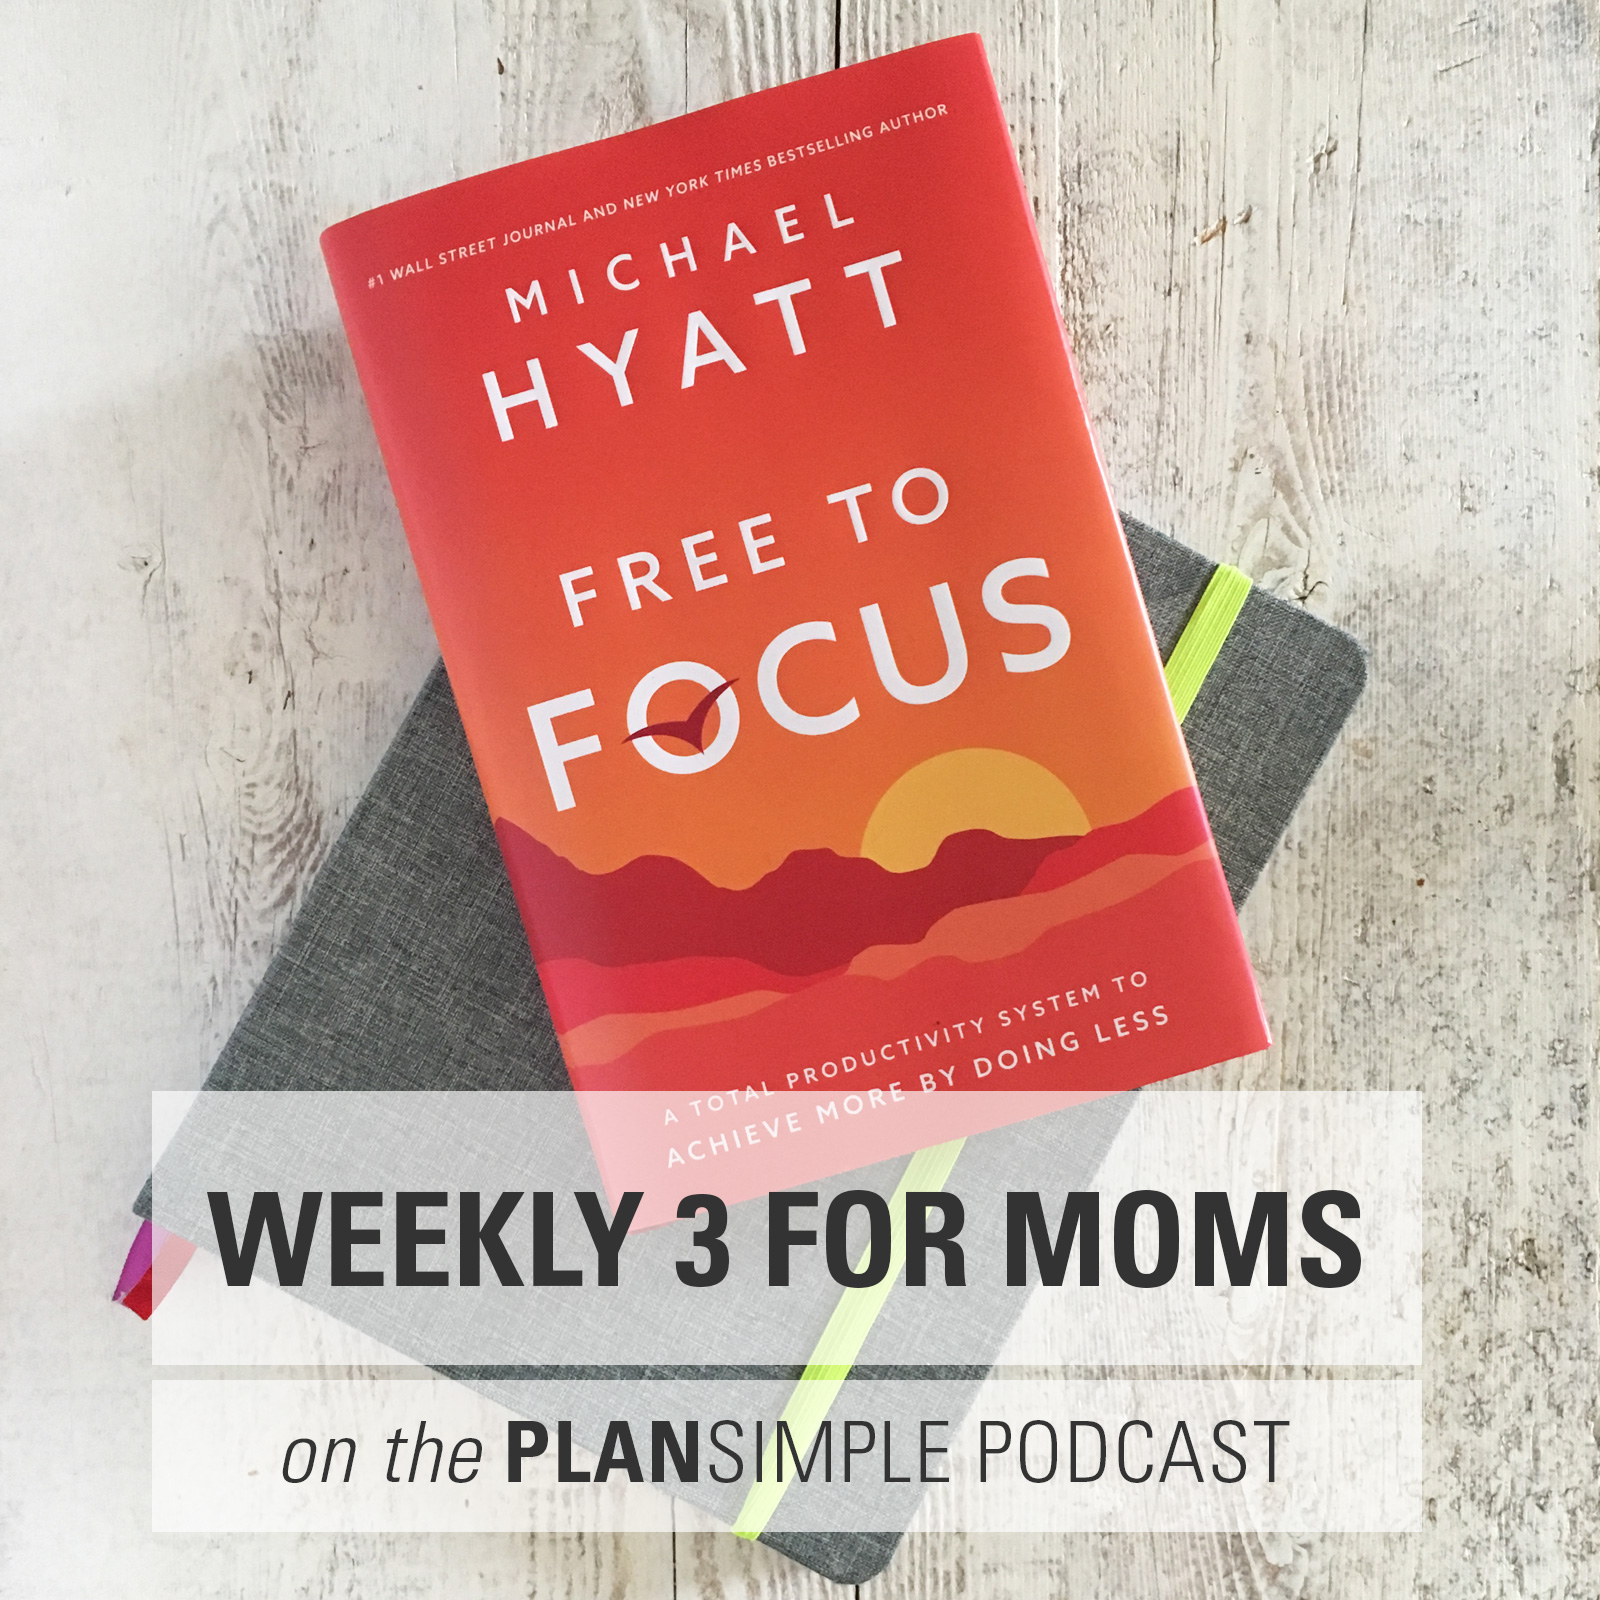 Weekly 3 For Moms — Planning Your Week